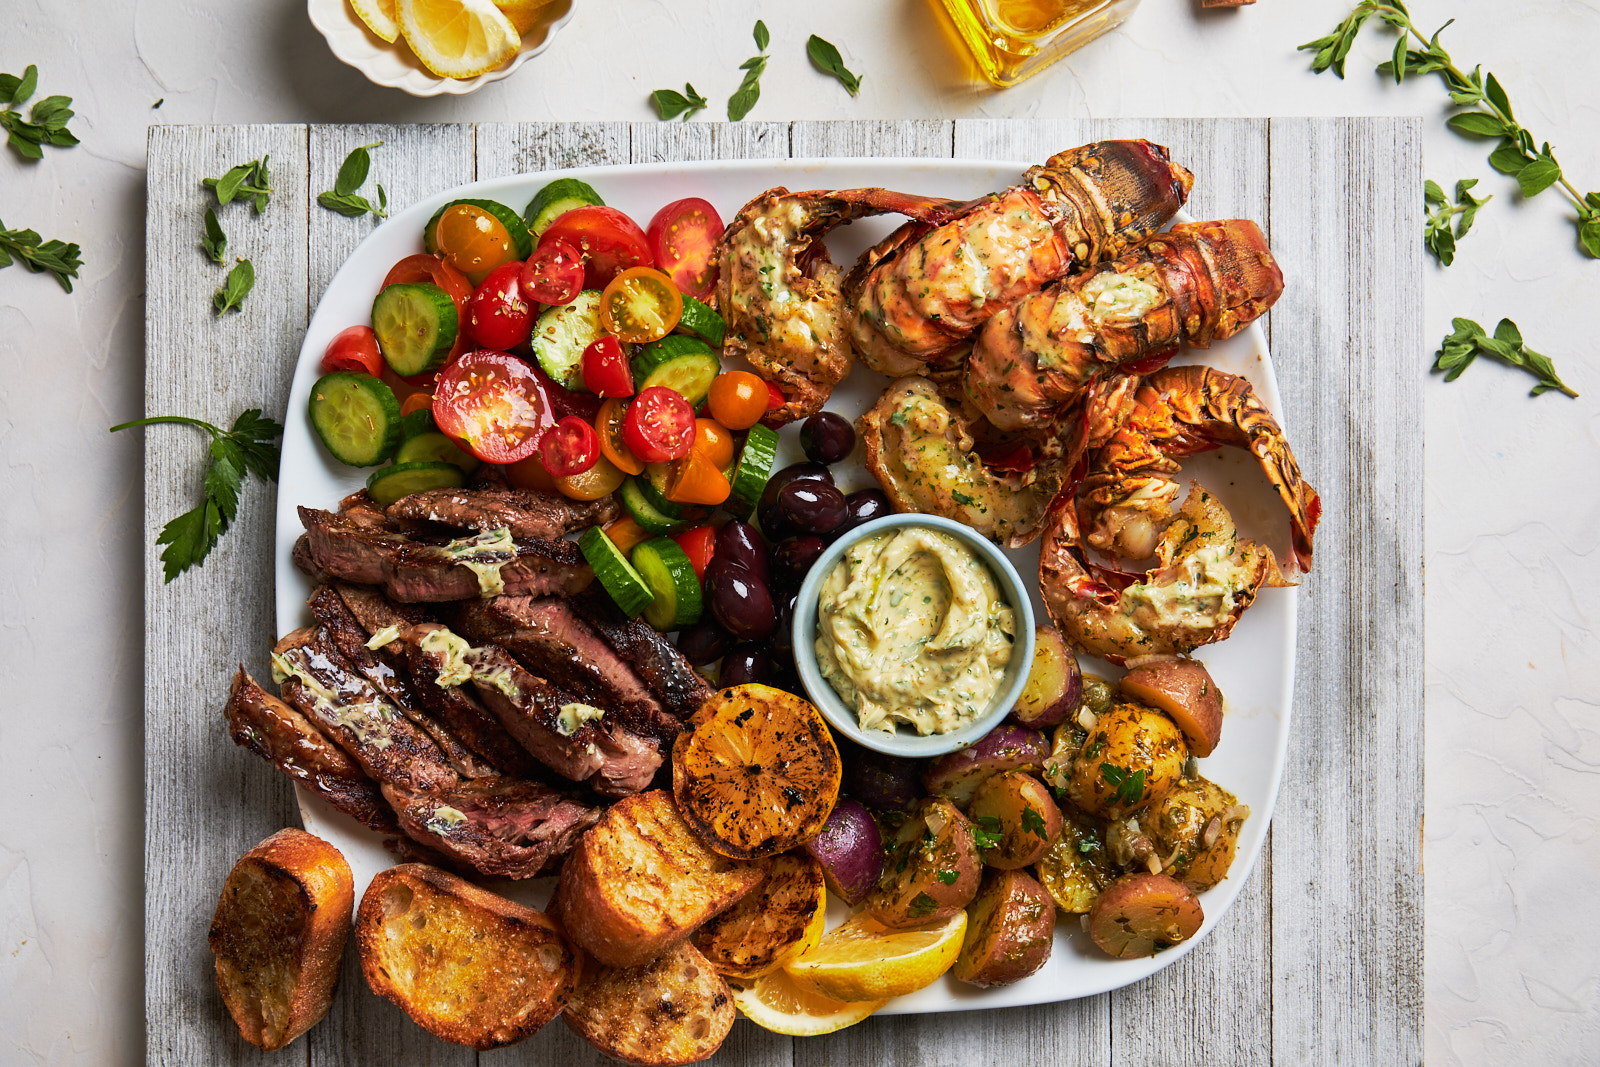 Grilled Lobster Tail and Steak Platter ...